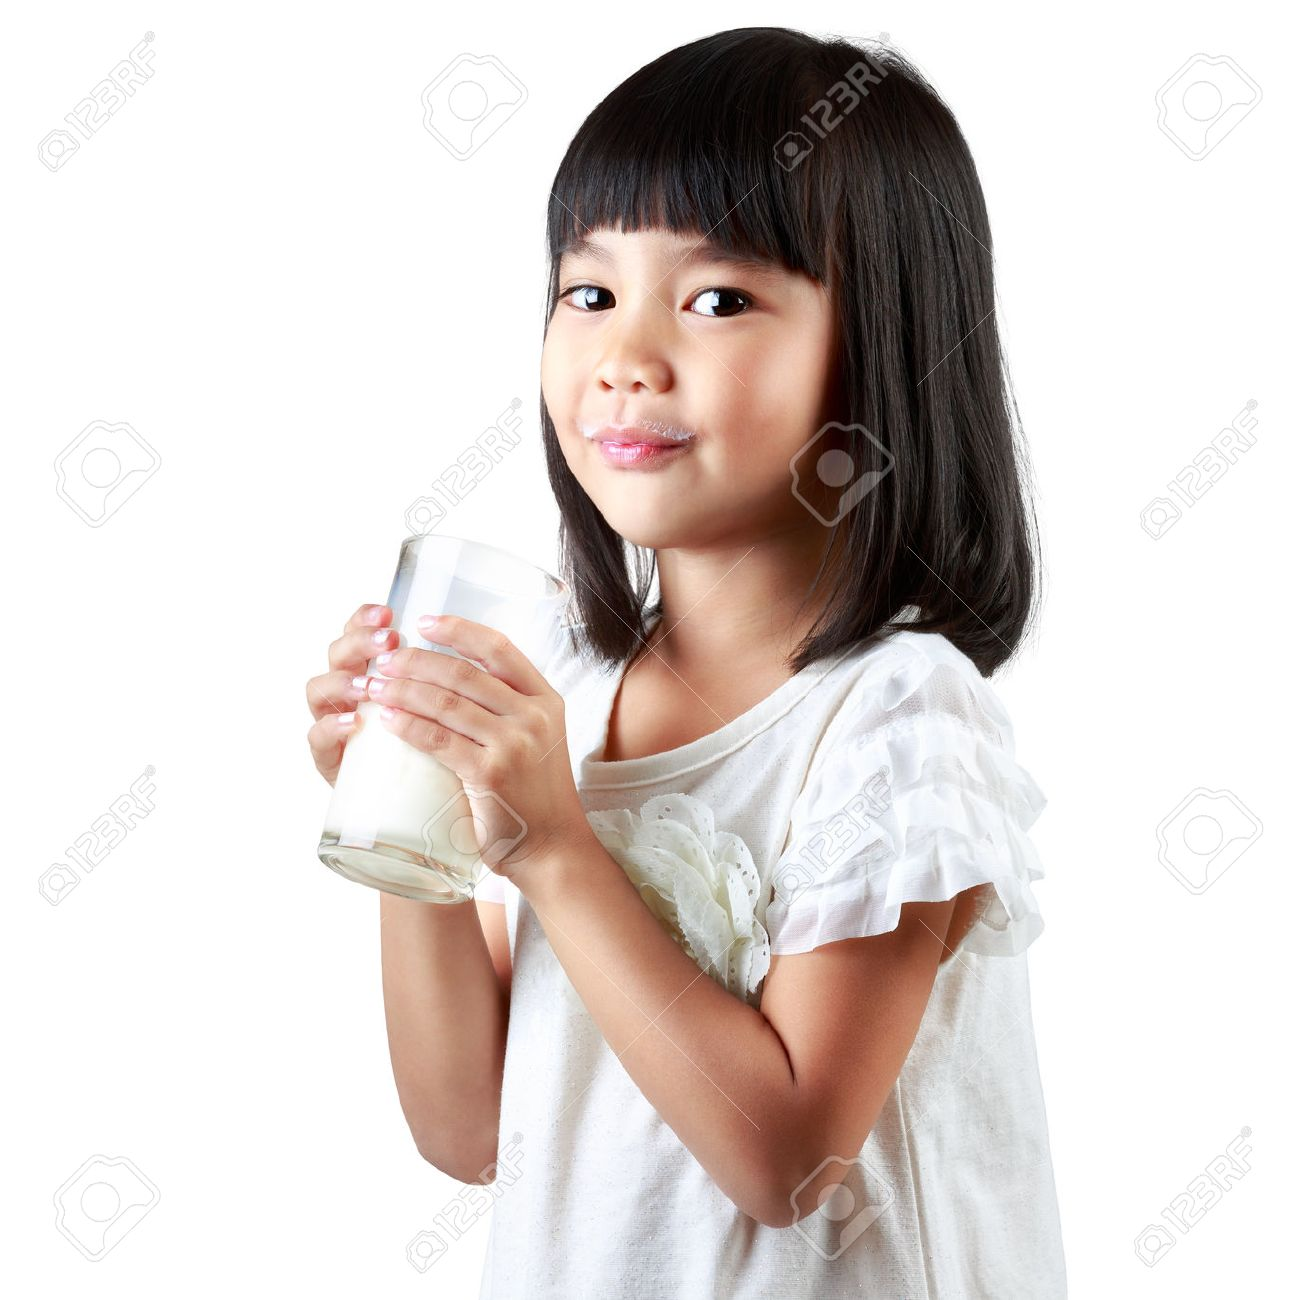 Happy Little Asian Girl Holding A Cup Of Milk Isolated Over White Stock Photo